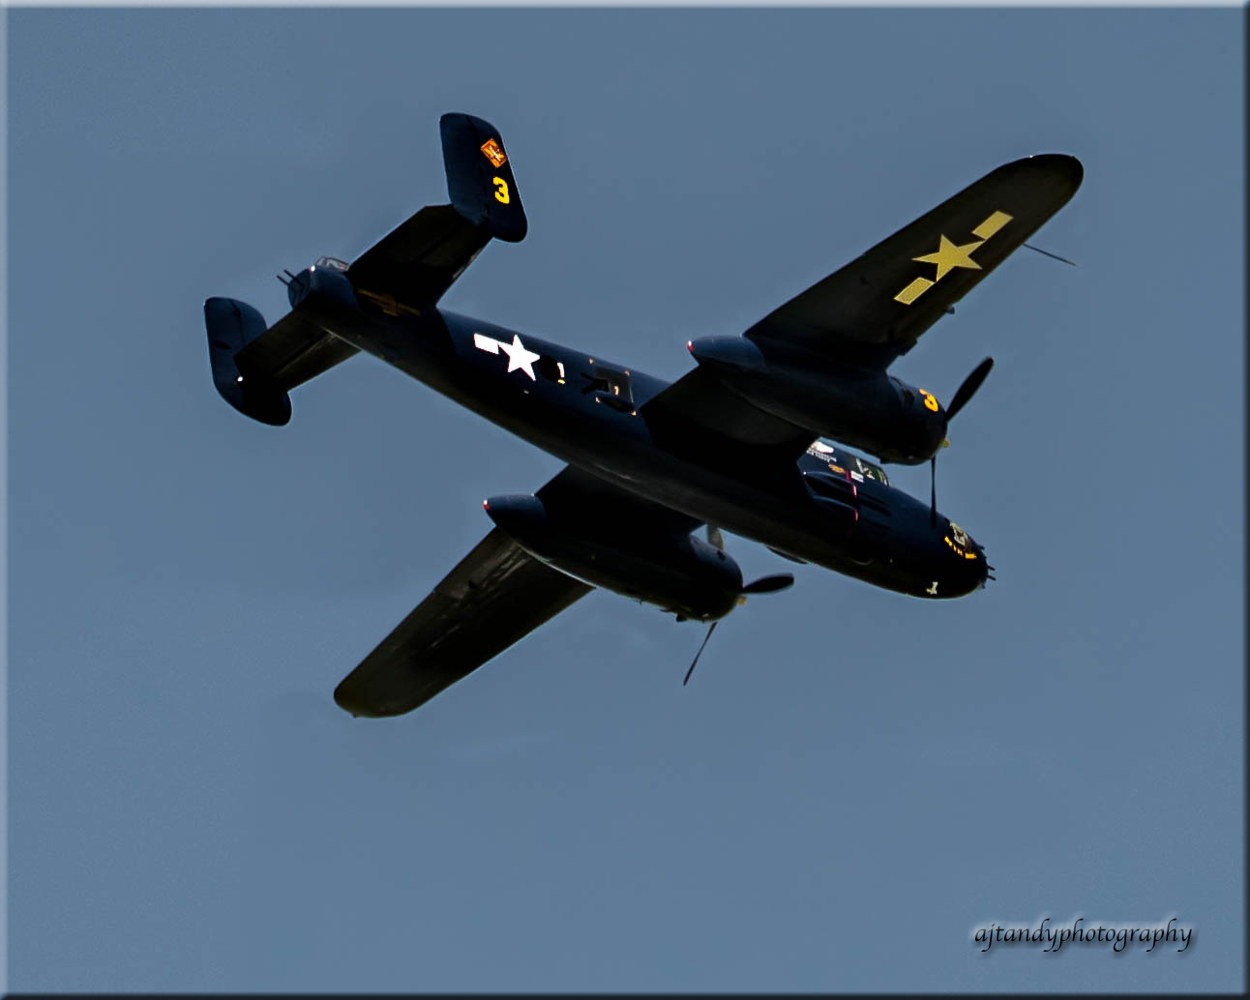 WWII Martin B- 25 bombers lands in Dayton. by Andy Humphrey